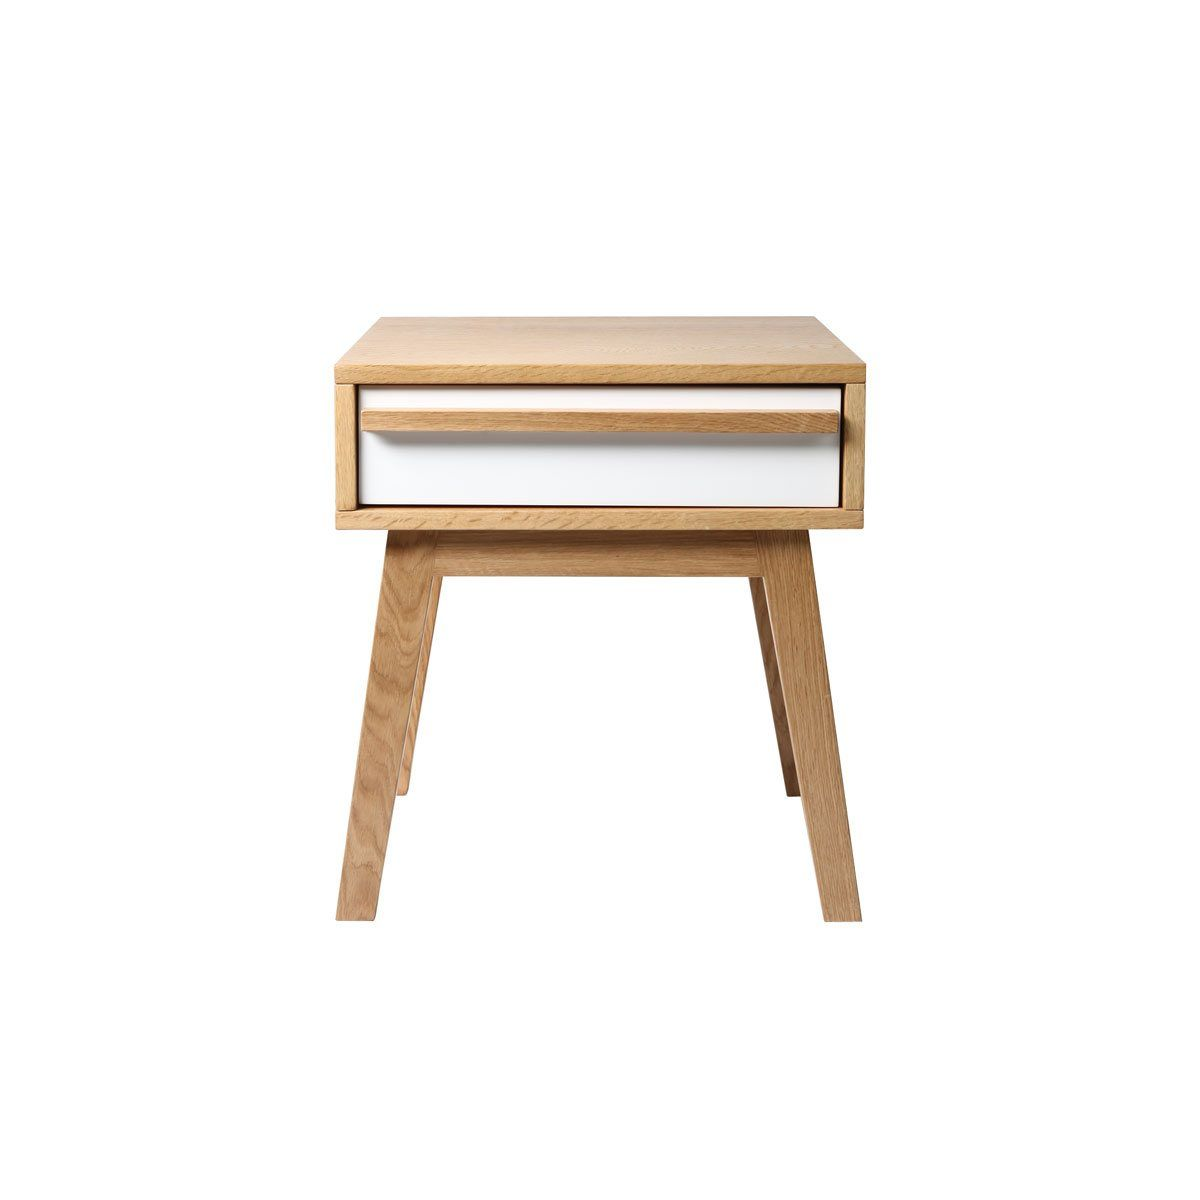 Table De Chevet Nordique Table De Chevet Design Scandinave Helia Miliboo La